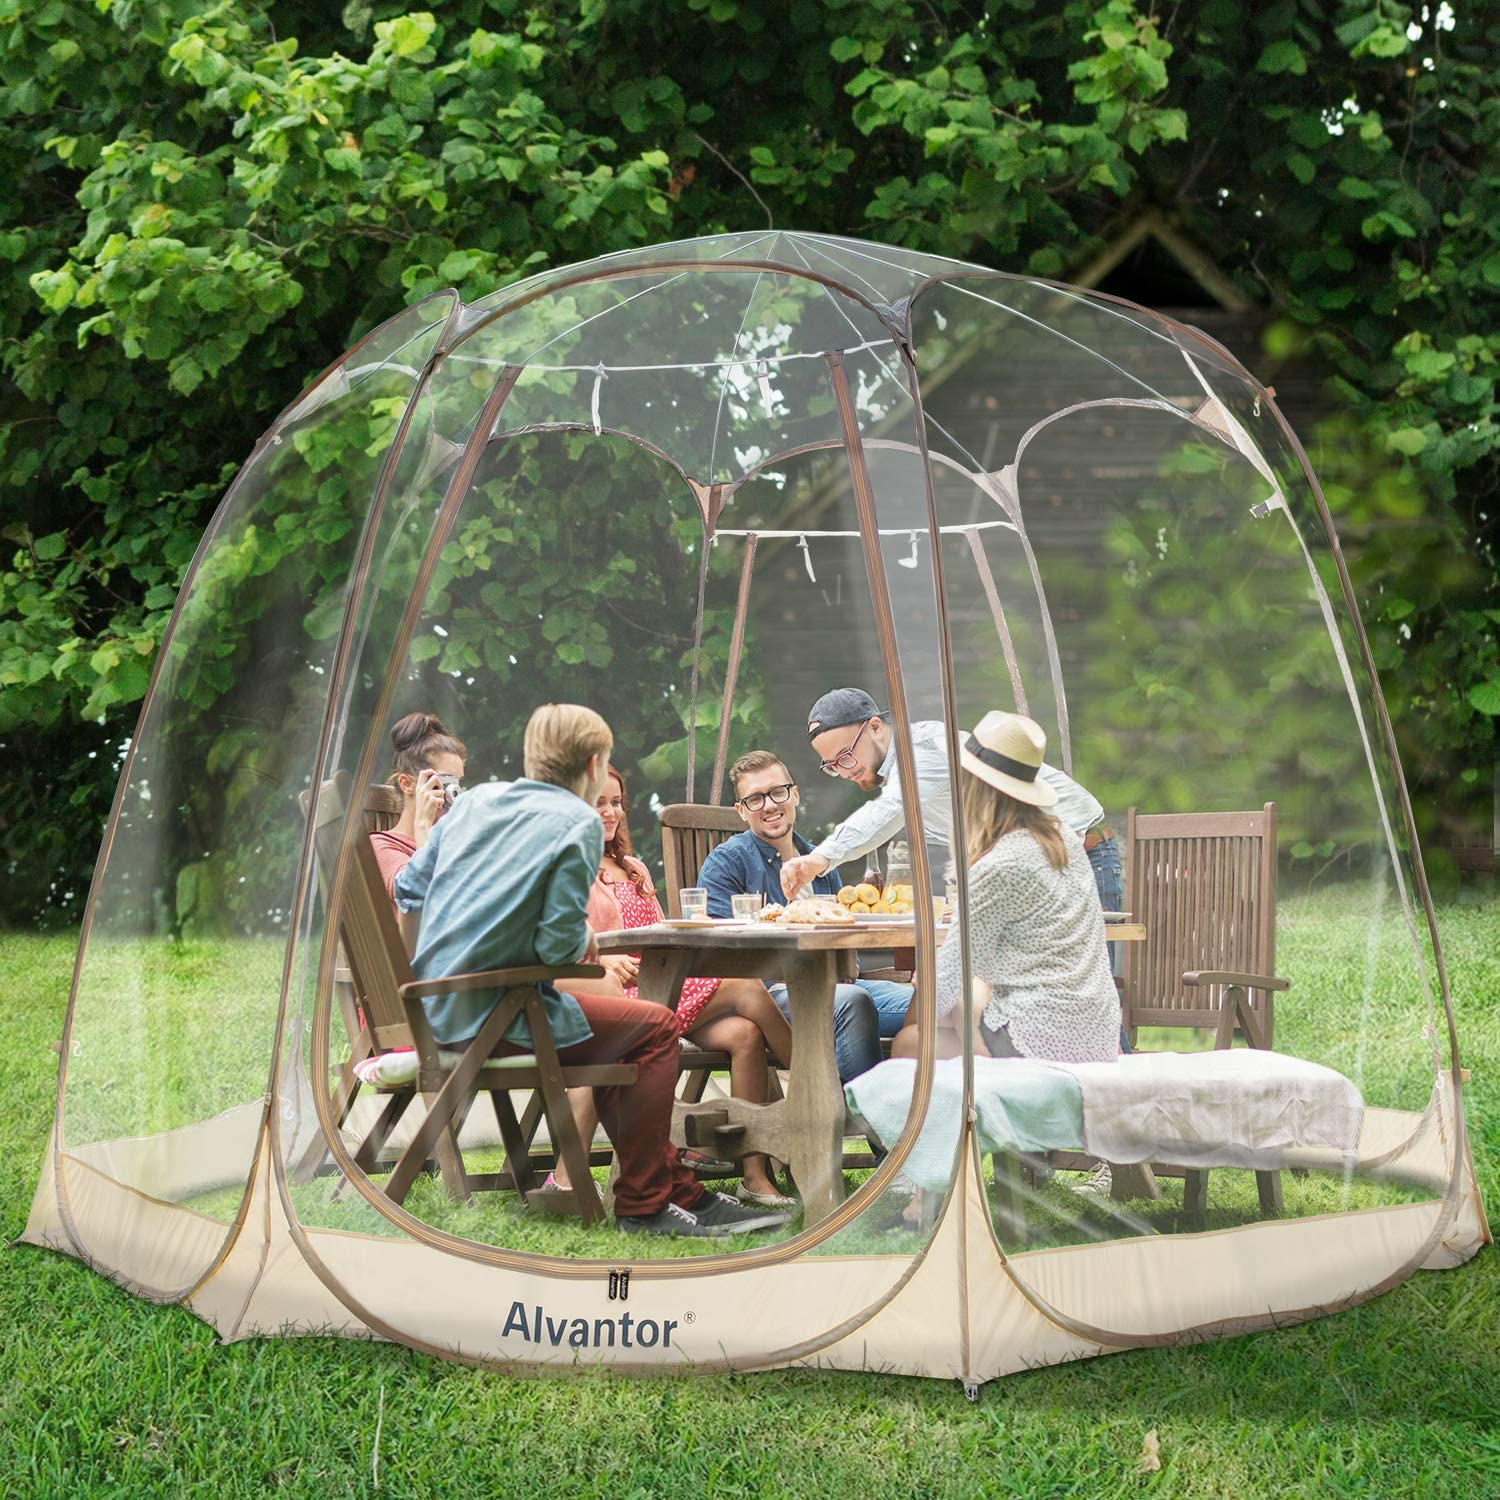 Alvantor 10' * 10' Pop-up Gazebo/ Bubble Tent for 4-6 Person